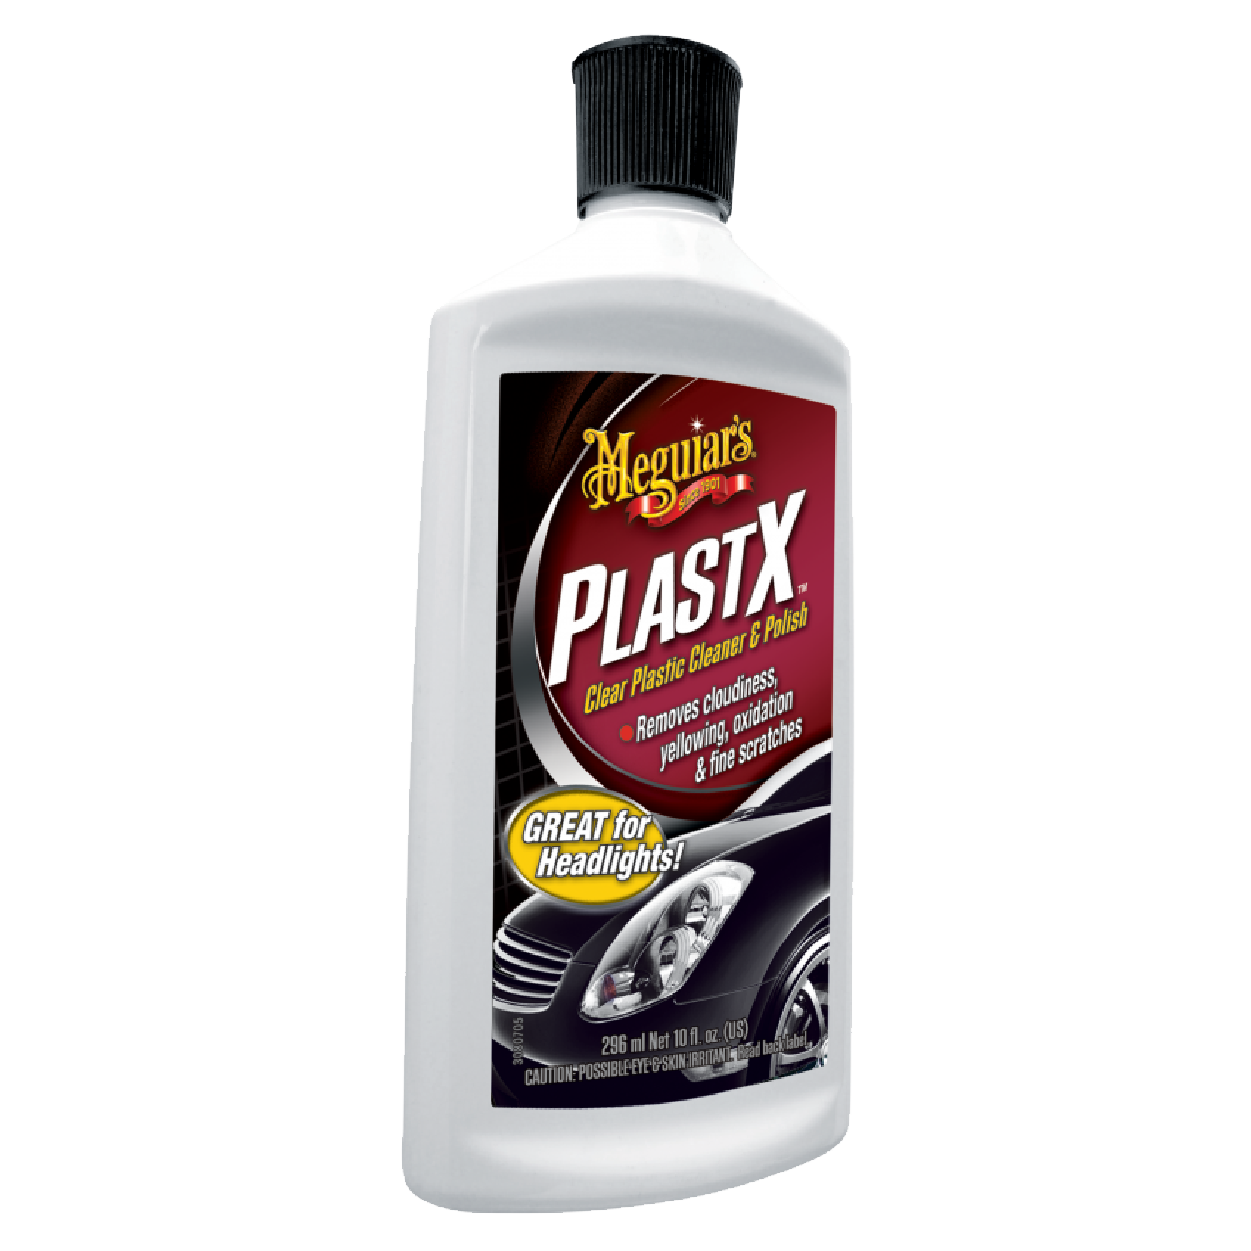 PLAST-X CLEAR PLASTIC CLEANER 1